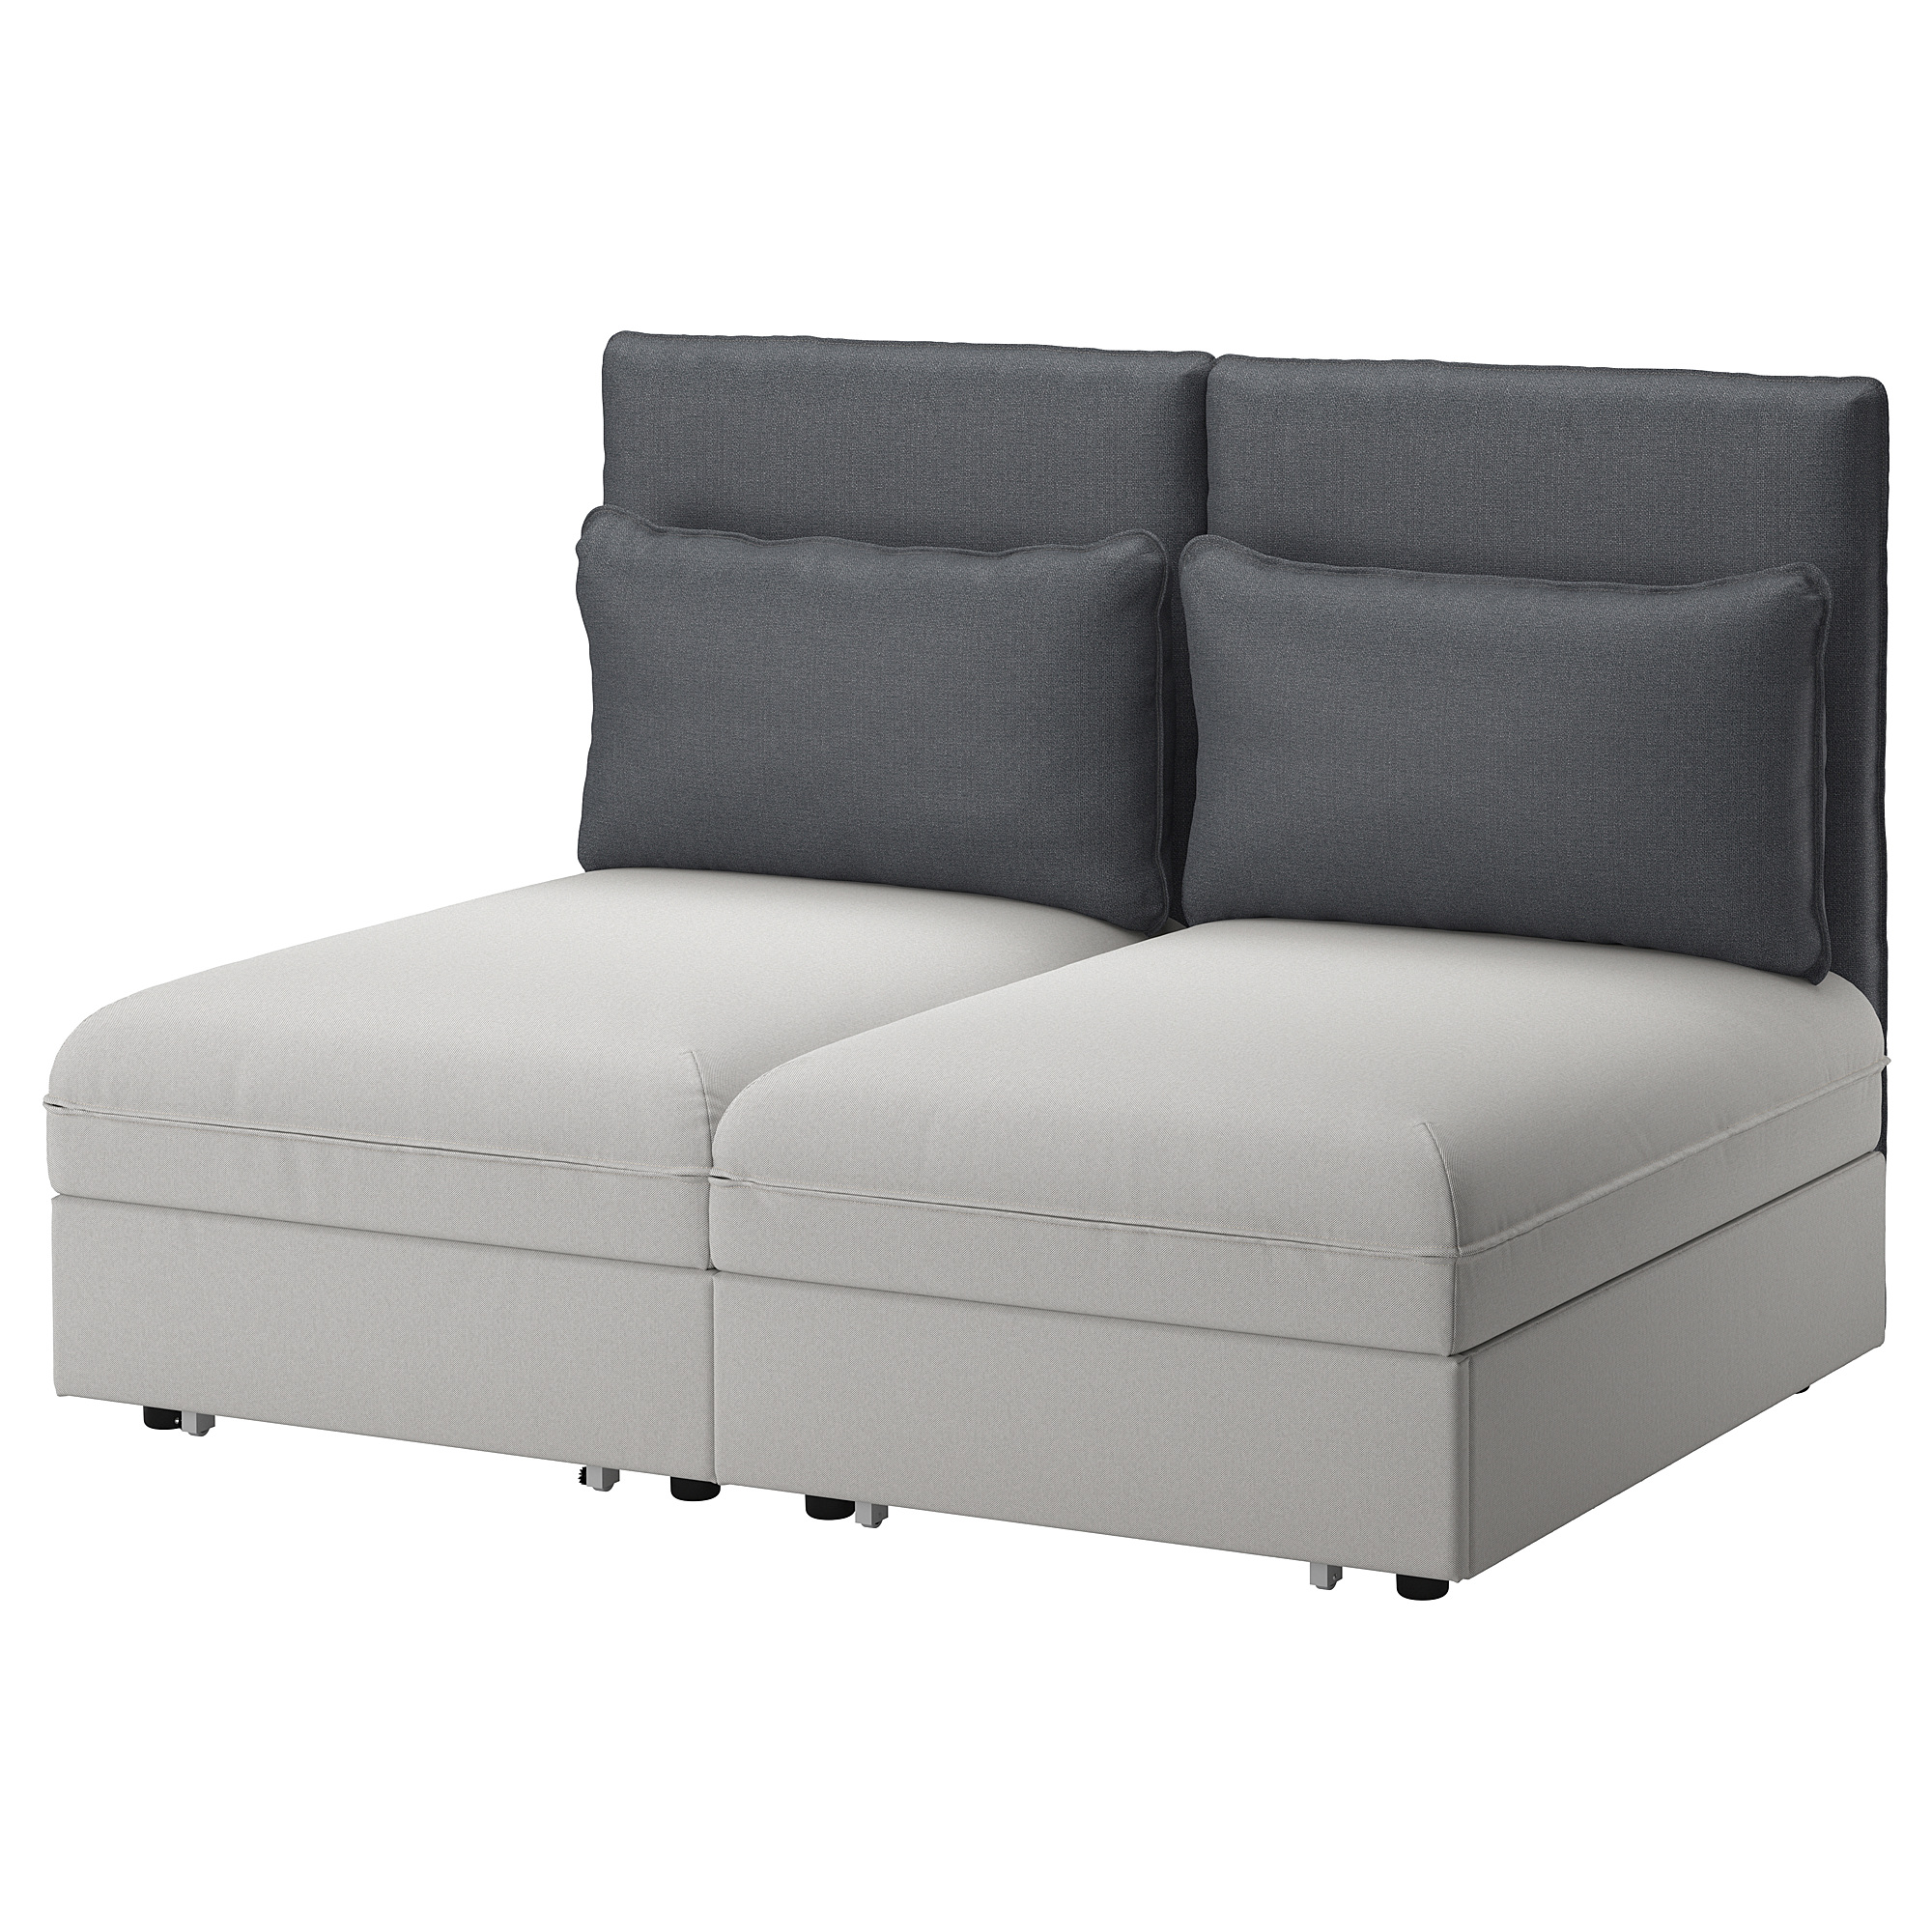 Schlafsofa ikea  VALLENTUNA 2-seat sofa with bed - IKEA